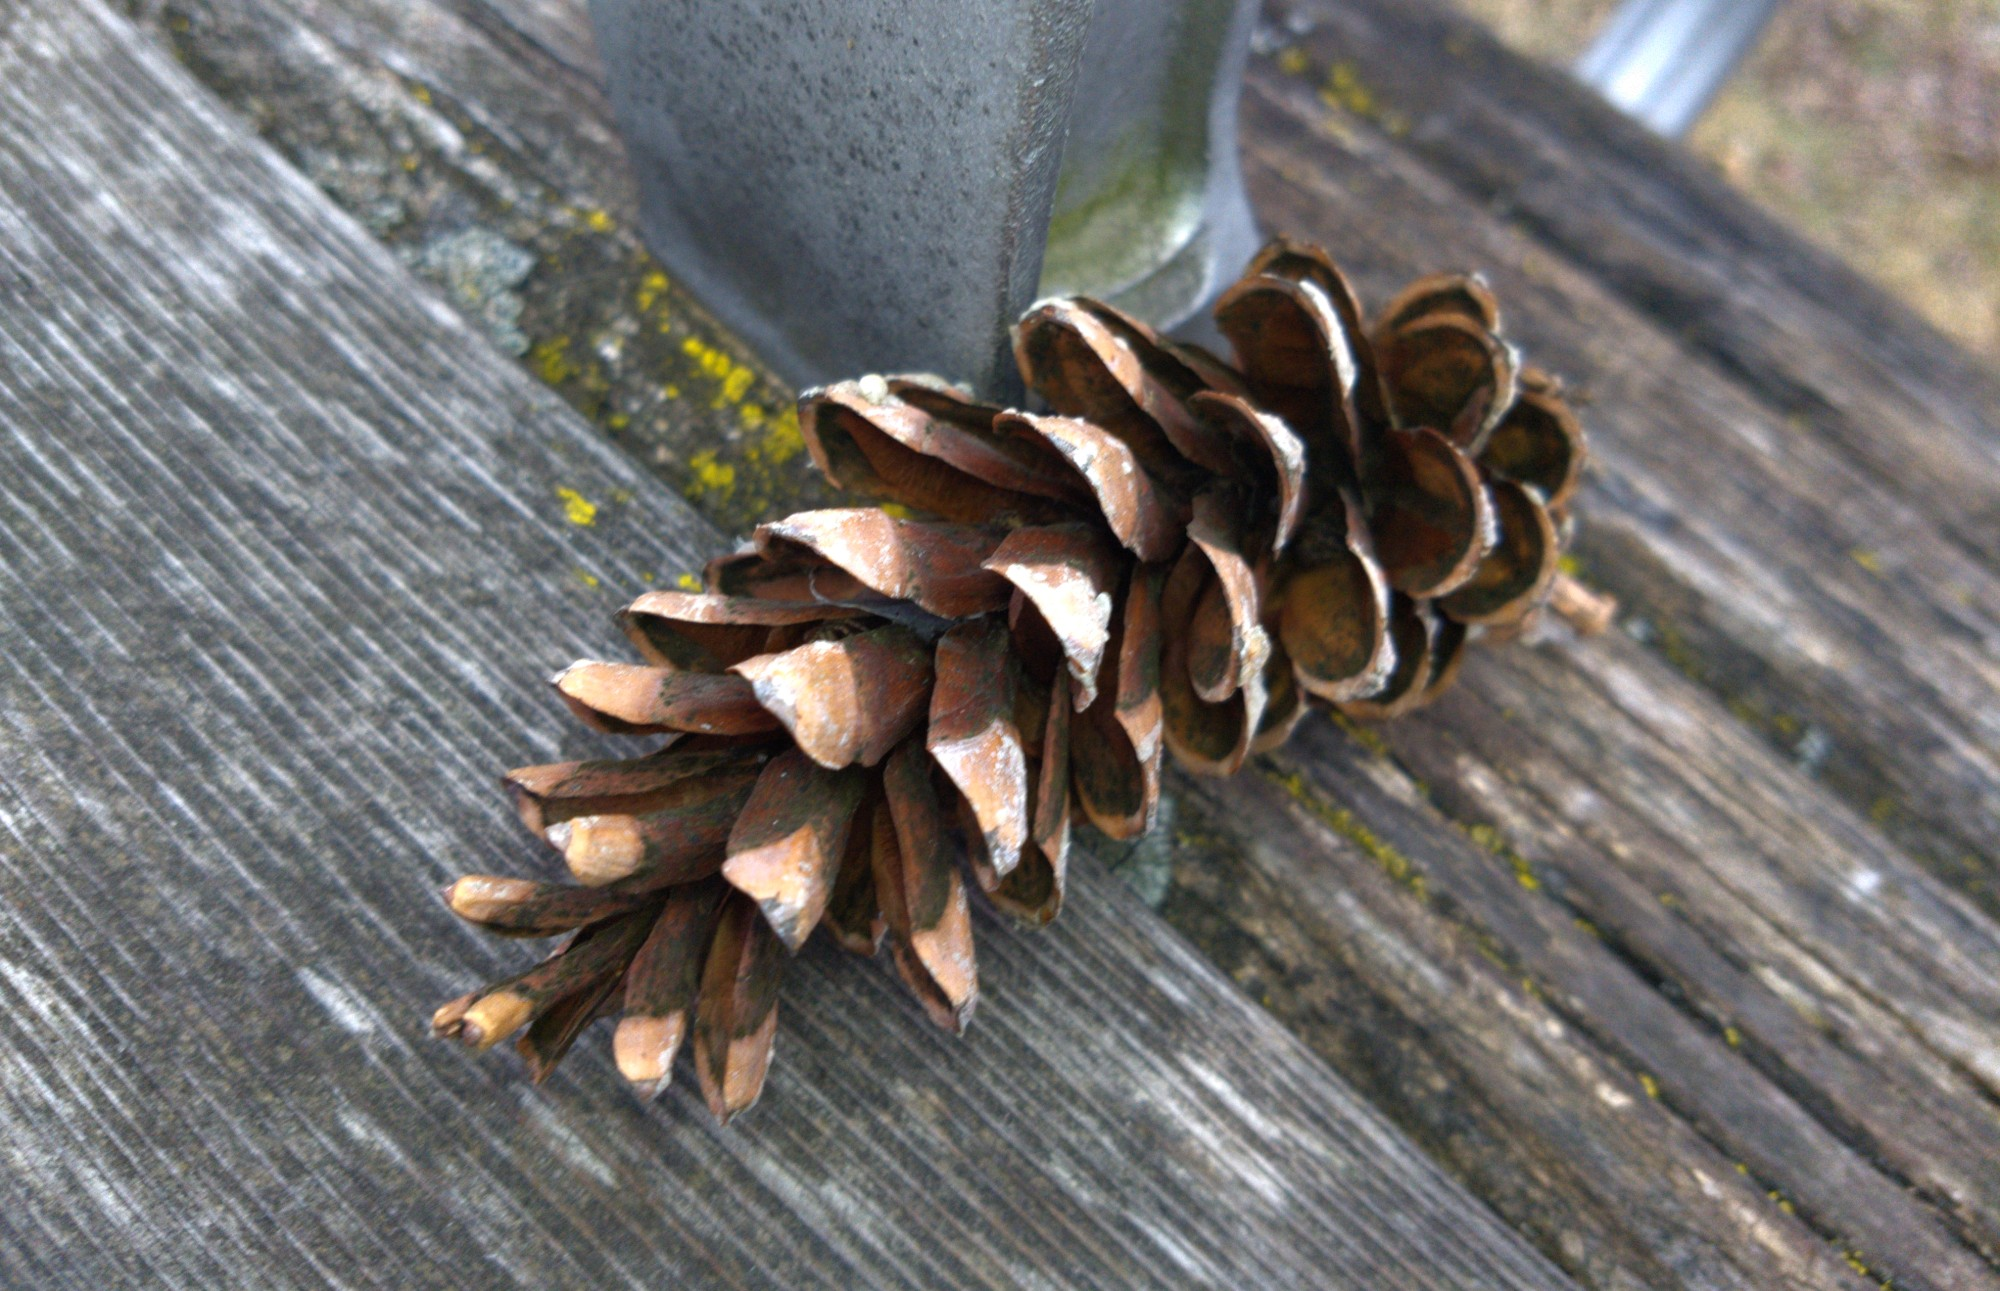 Field Journal: A Sunnyside pinecone